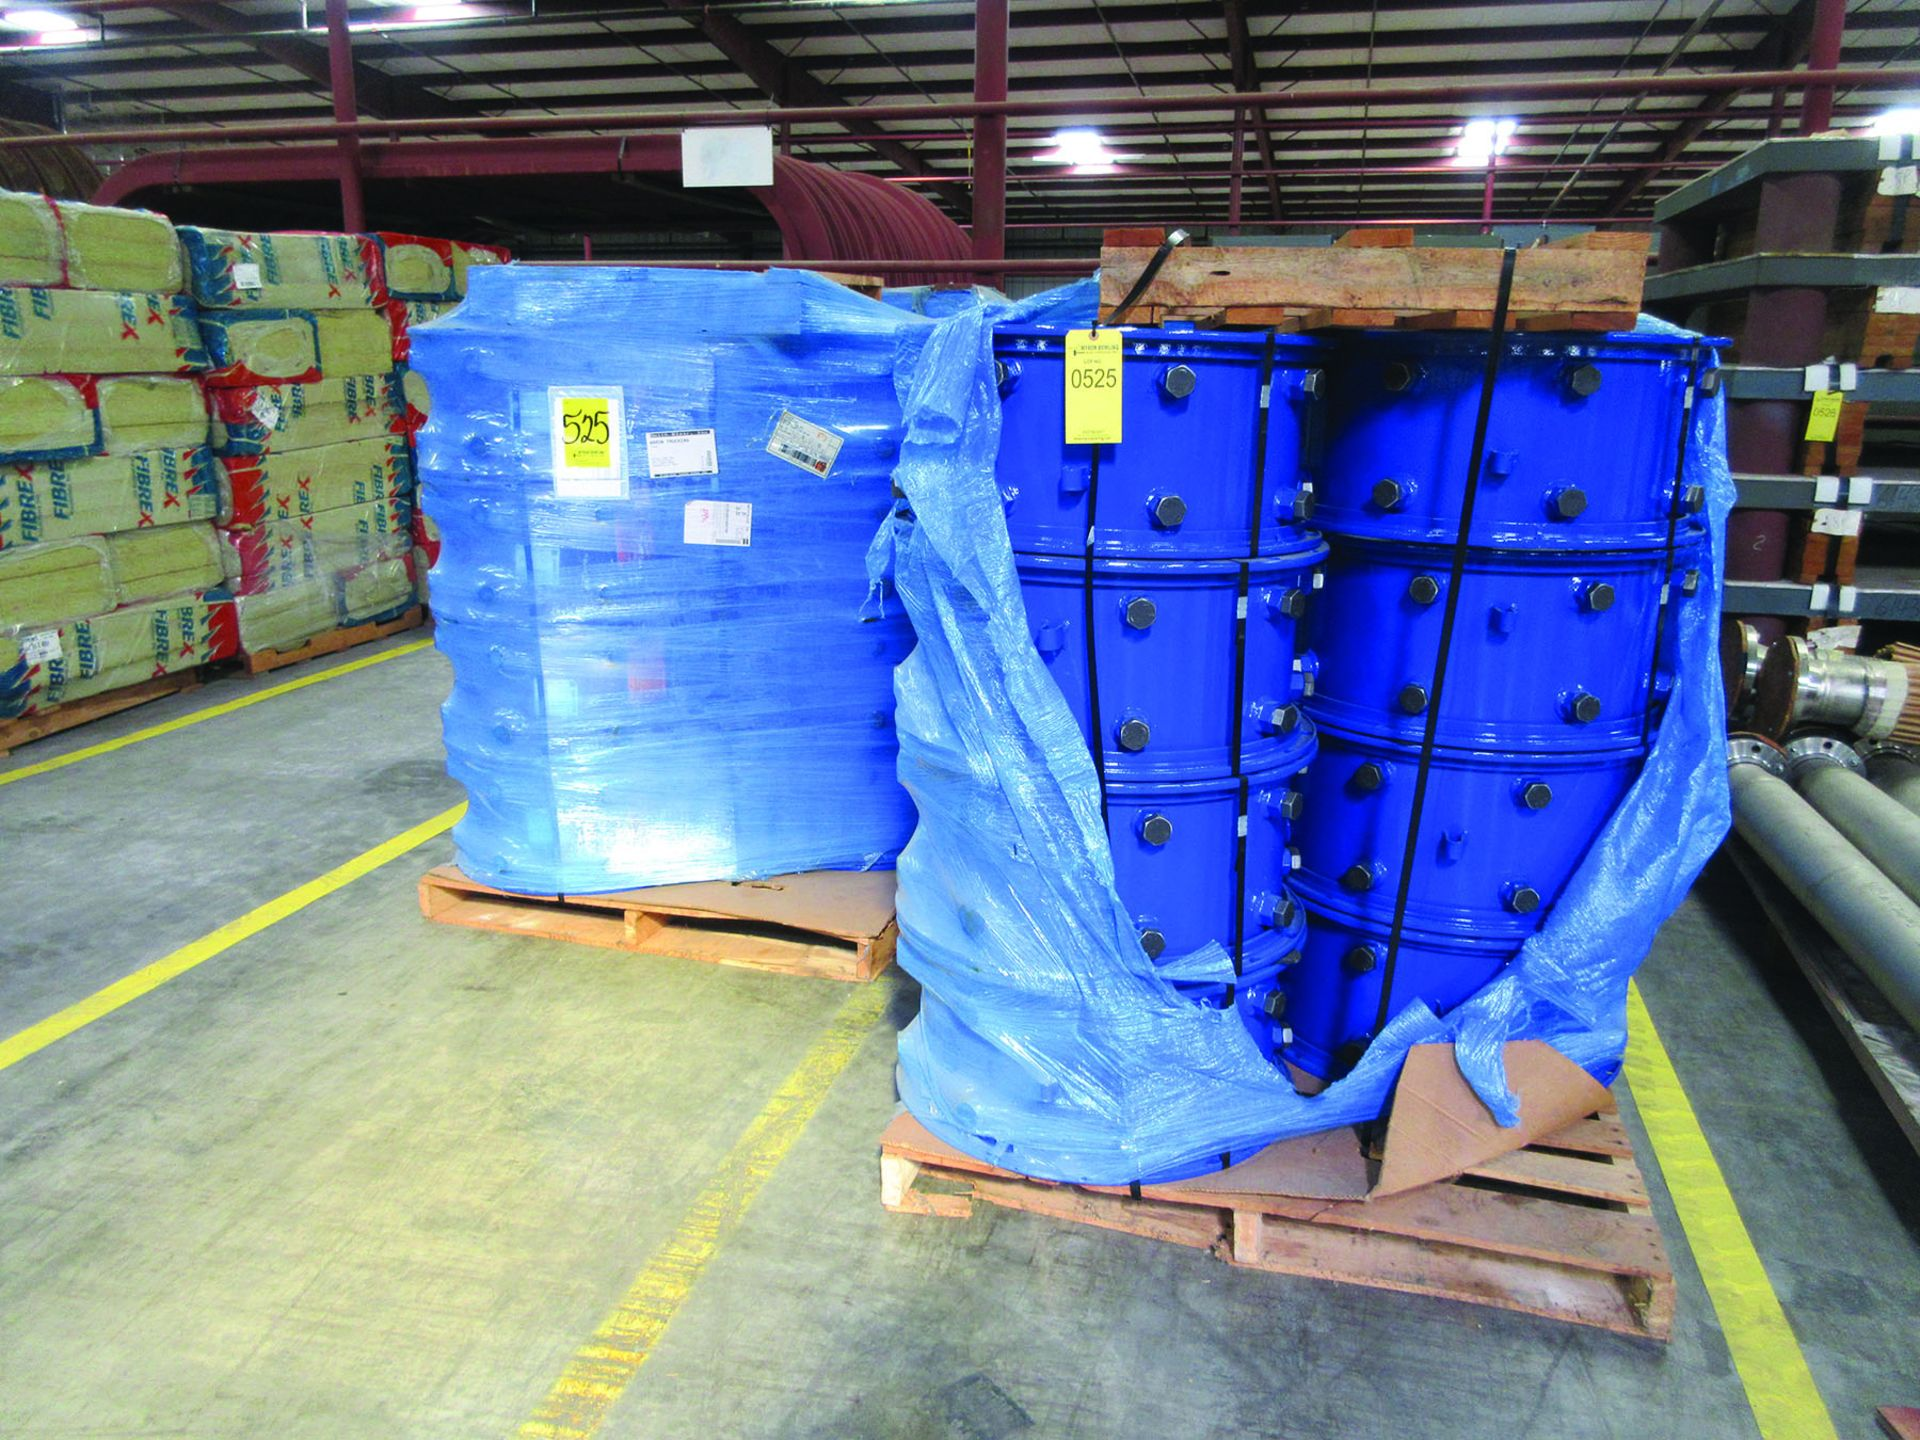 FIBREX INSULATION 4'' X 24'' X 48'' (4) PALLETS, COUPLING GUARDS, (72) 24'' STEEL LOCK COUPLINGS, - Image 3 of 5